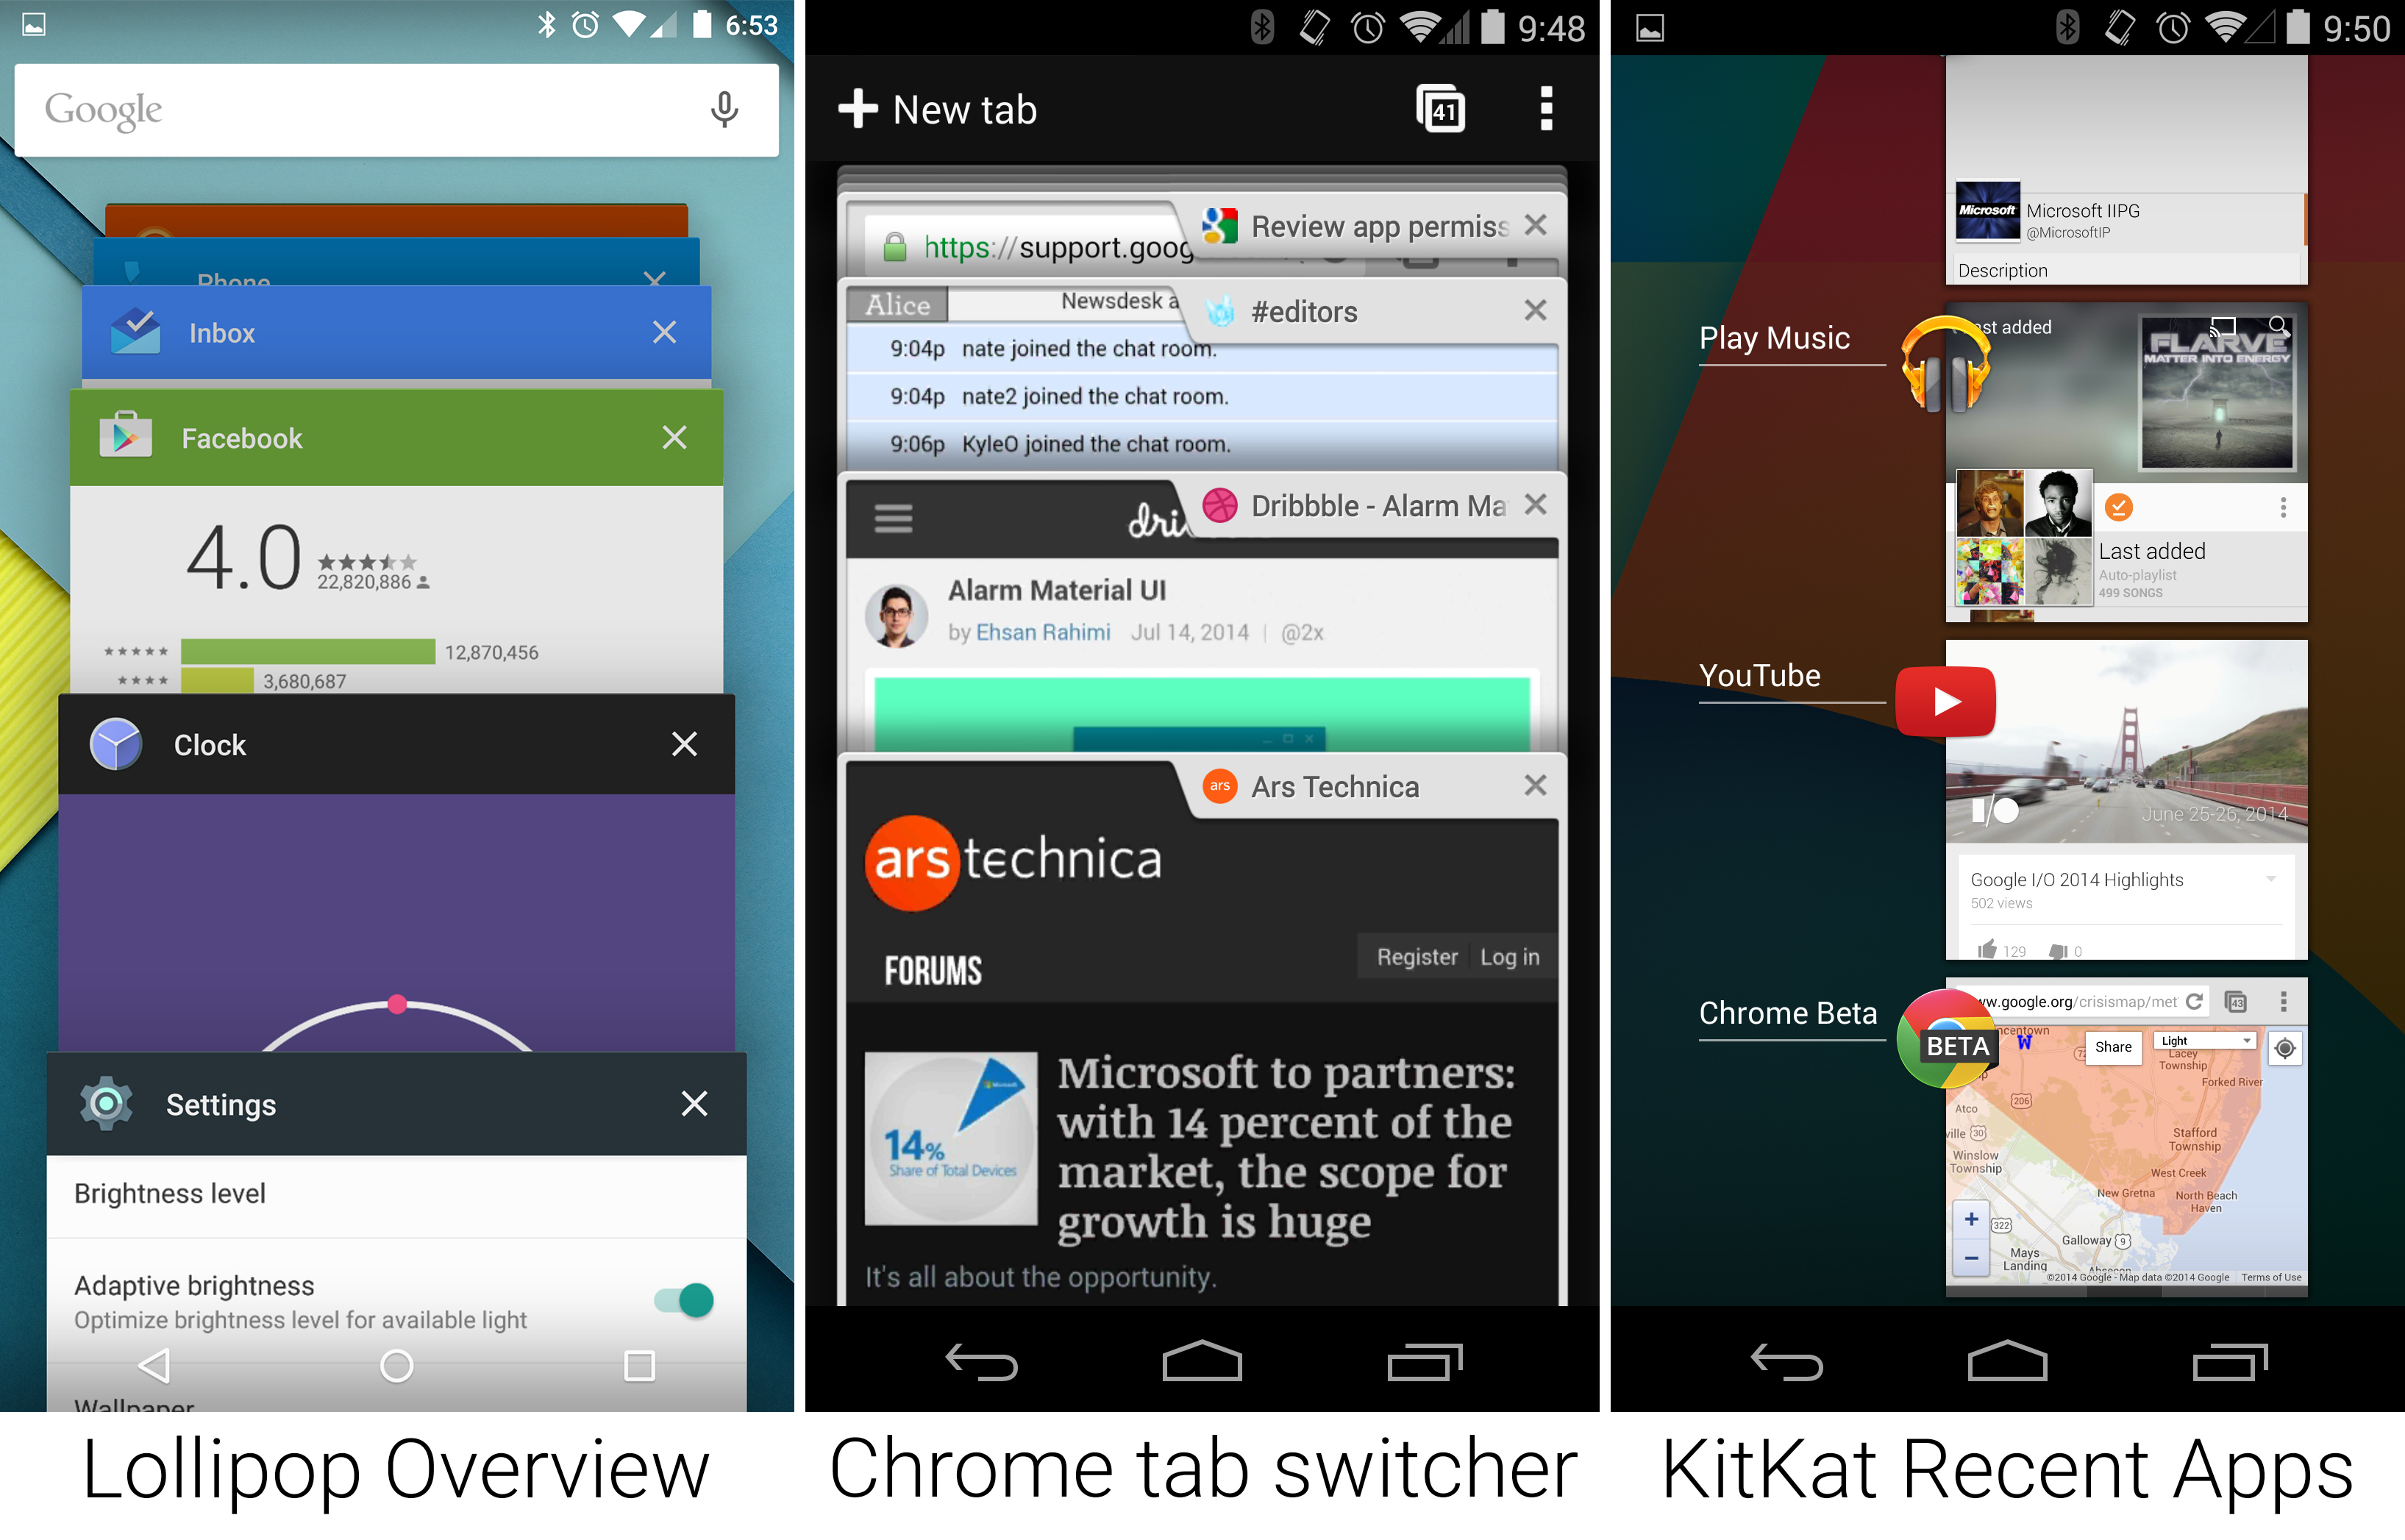 The new Recent Apps screen, which has clearly been inspired by Chrome's tab switcher.